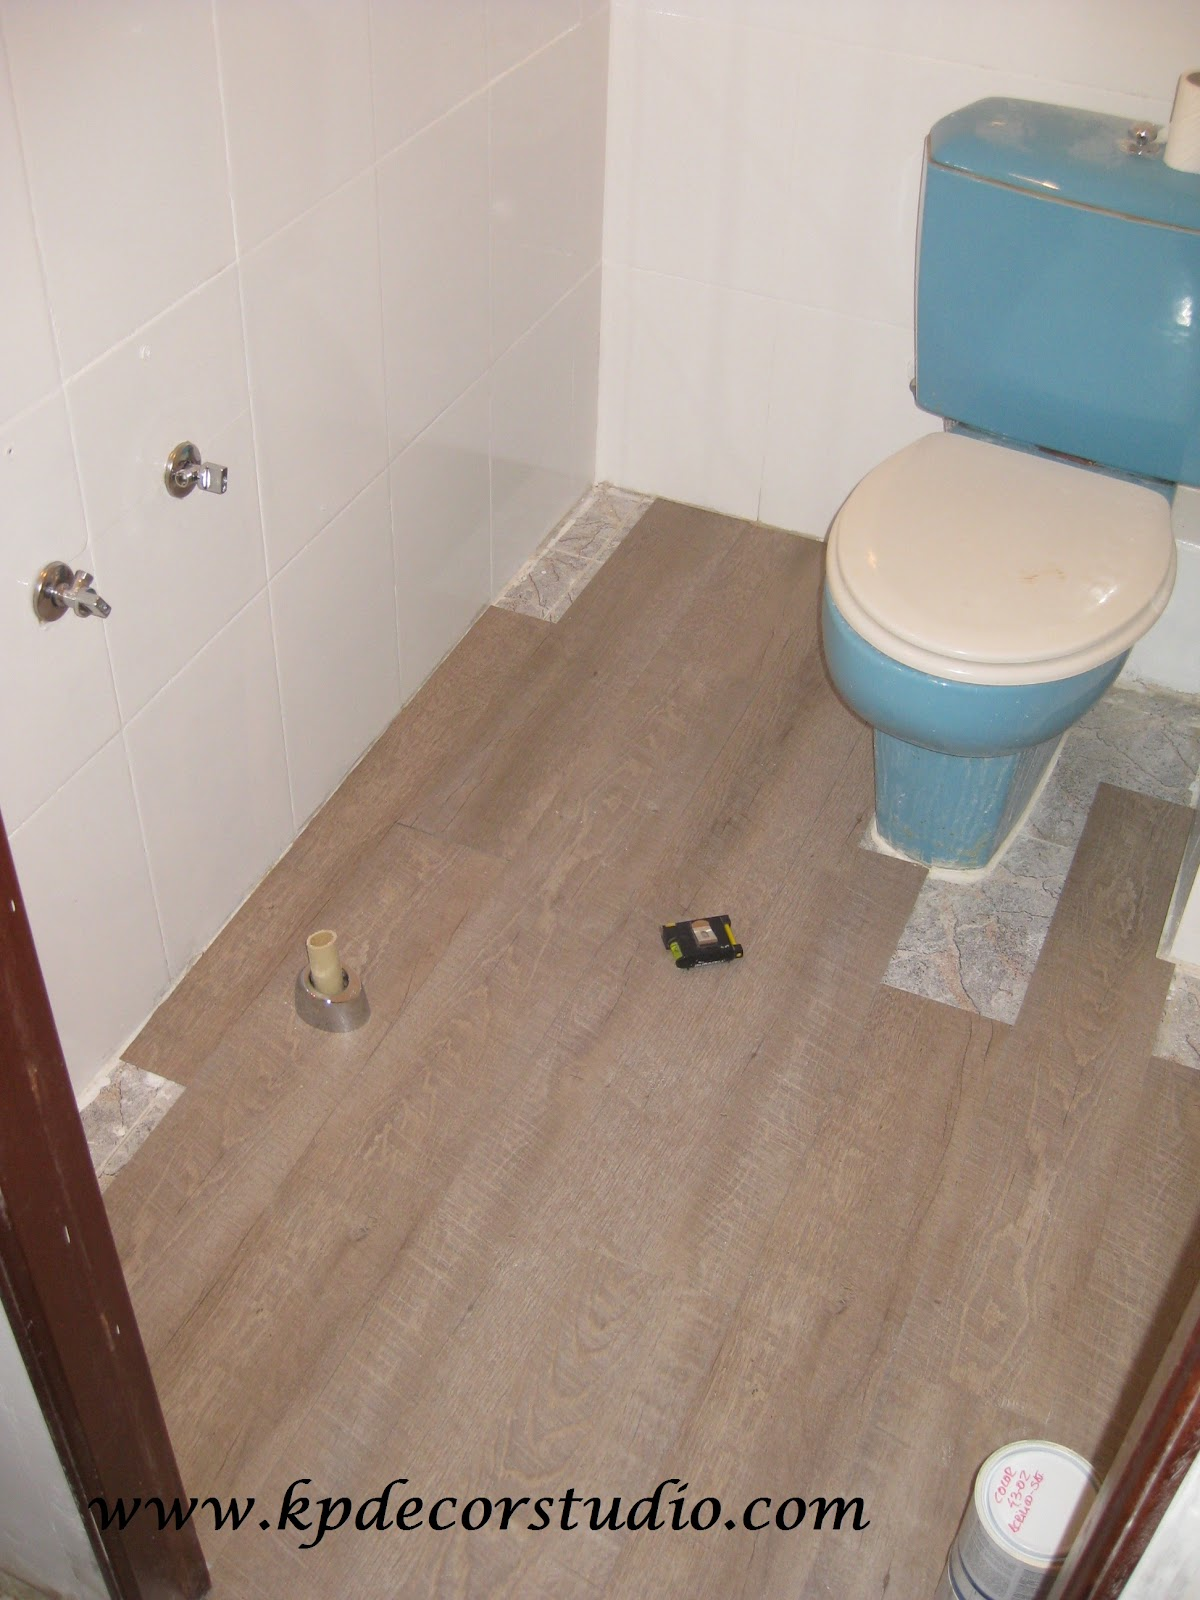 Kp decor studio reformando el ba o reforming the bathroom - Reformar bano sin obras leroy merlin ...